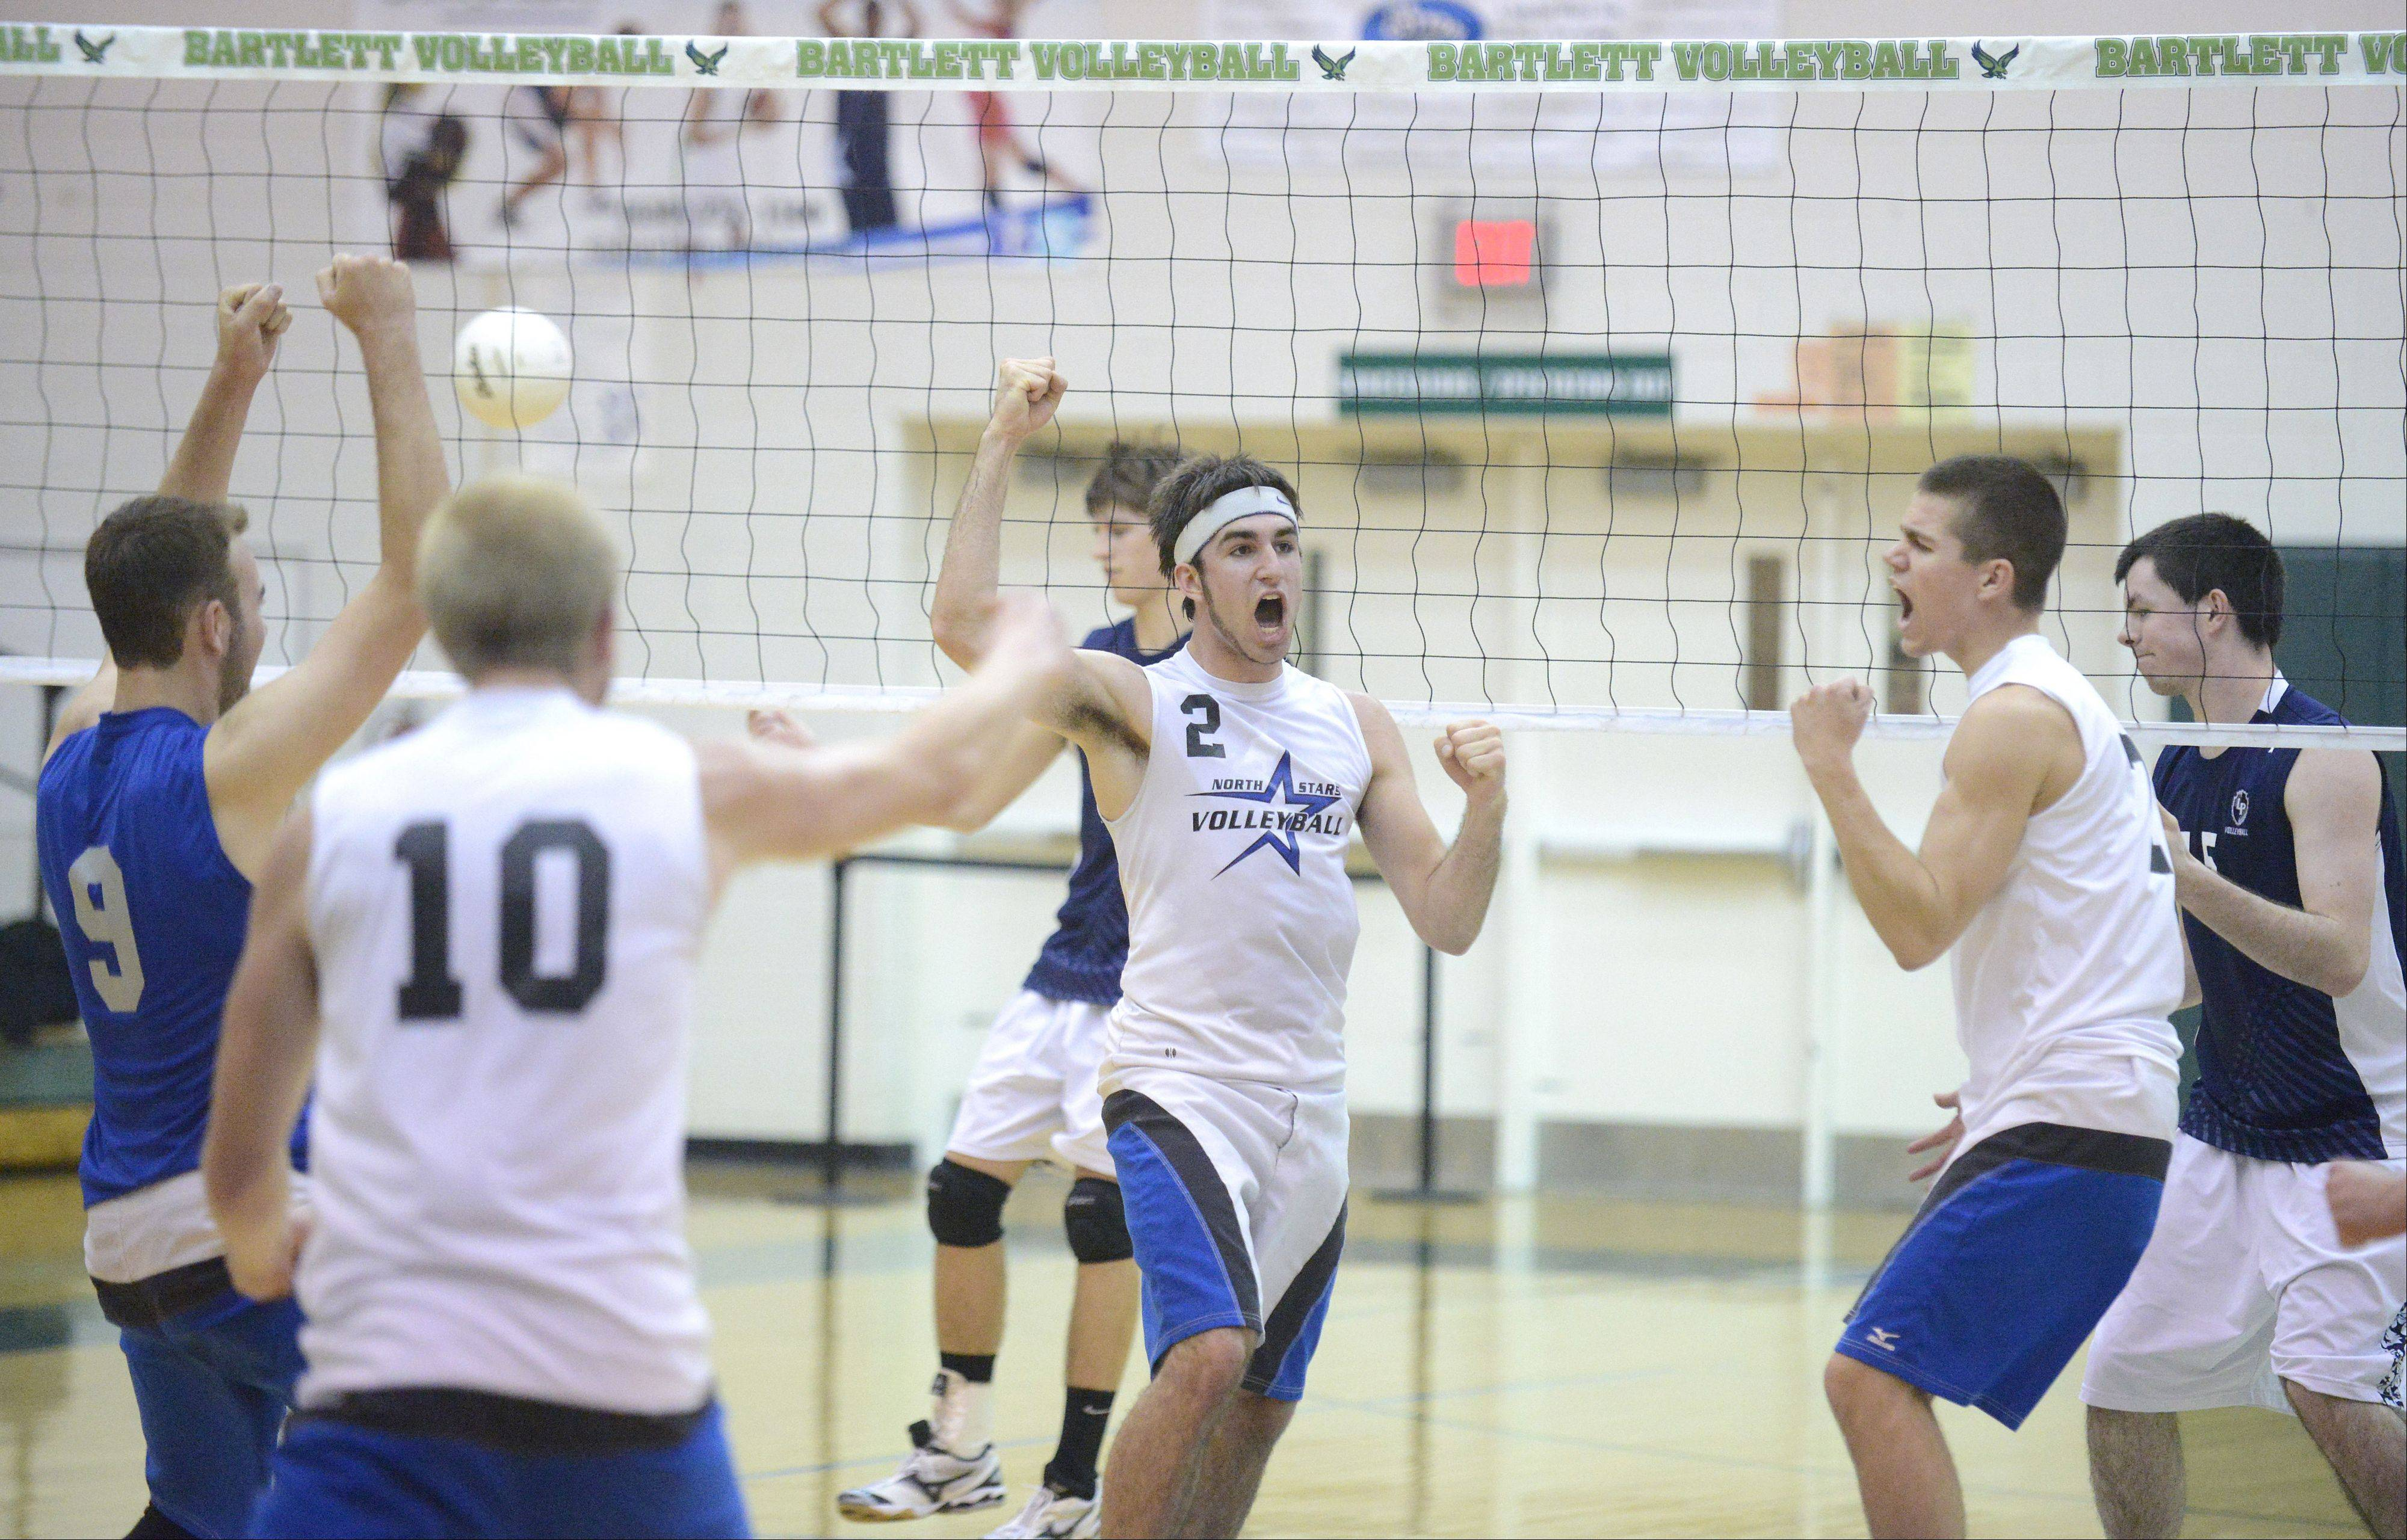 St. Charles North's Jonathan Orech, center, and teammates celebrate a point in the second game of sectional championship play against Lake Park in Bartlett on Tuesday.